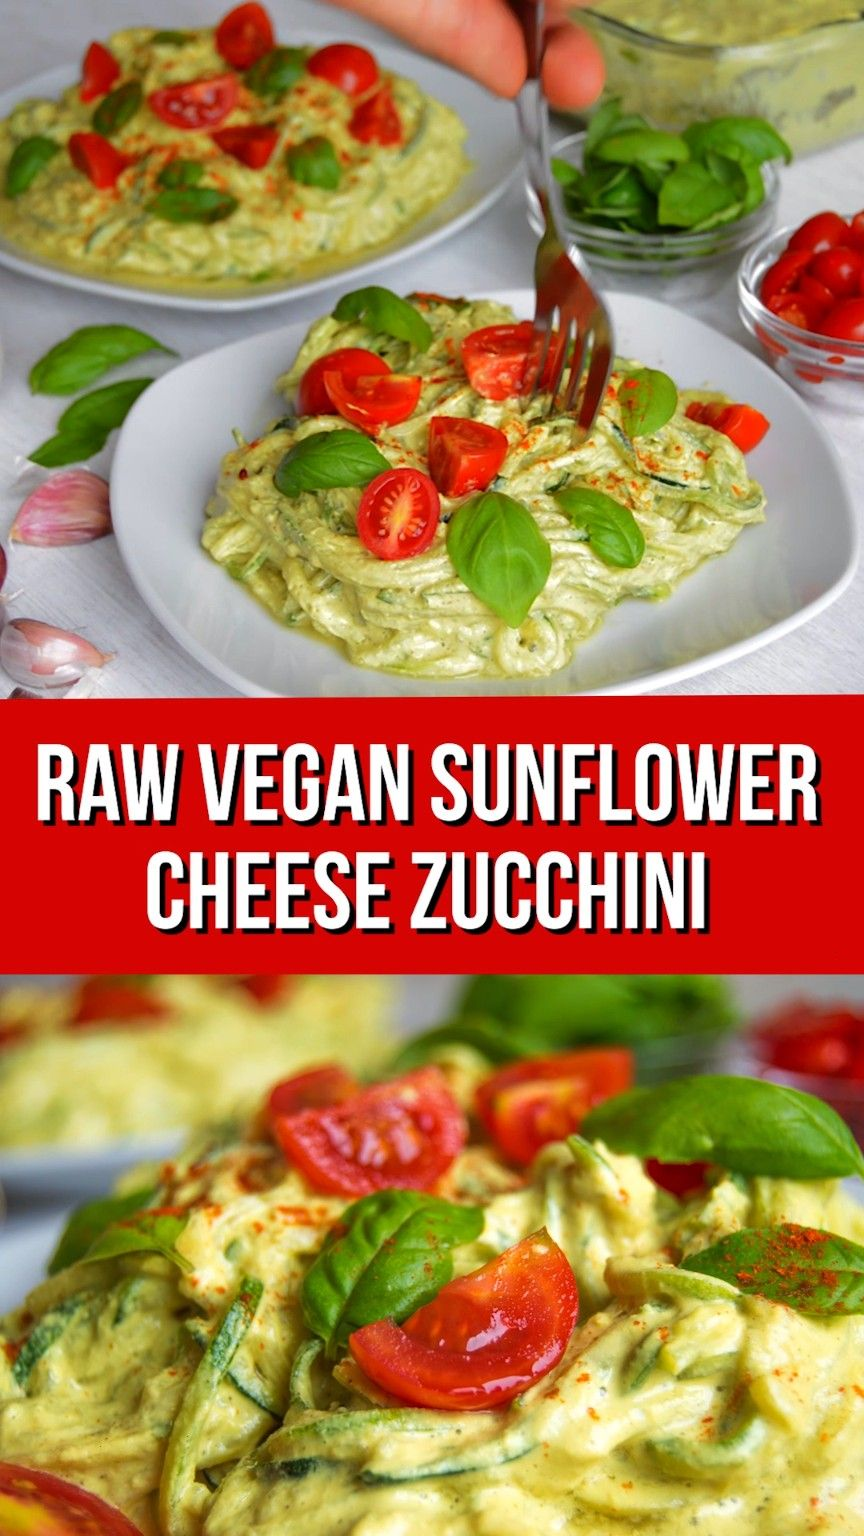 Sunflower Seed Cheese  - Food Cravings -Courgetti Sunflower Seed Cheese  - Food Cravings -  We love